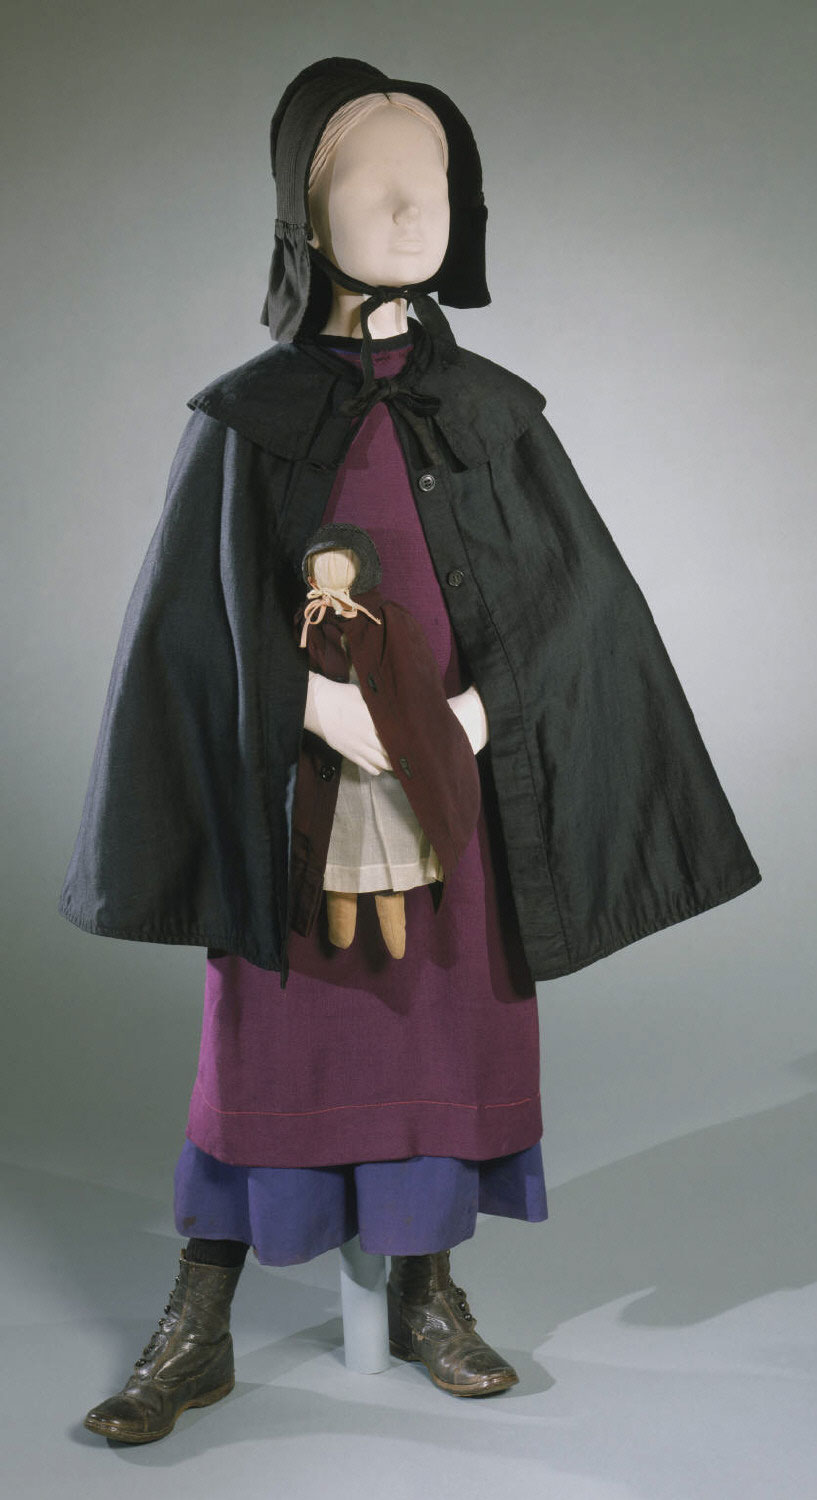 Amish Girl's Ensemble: Dress, Pinafore, Mantle, Bonnet, and Doll